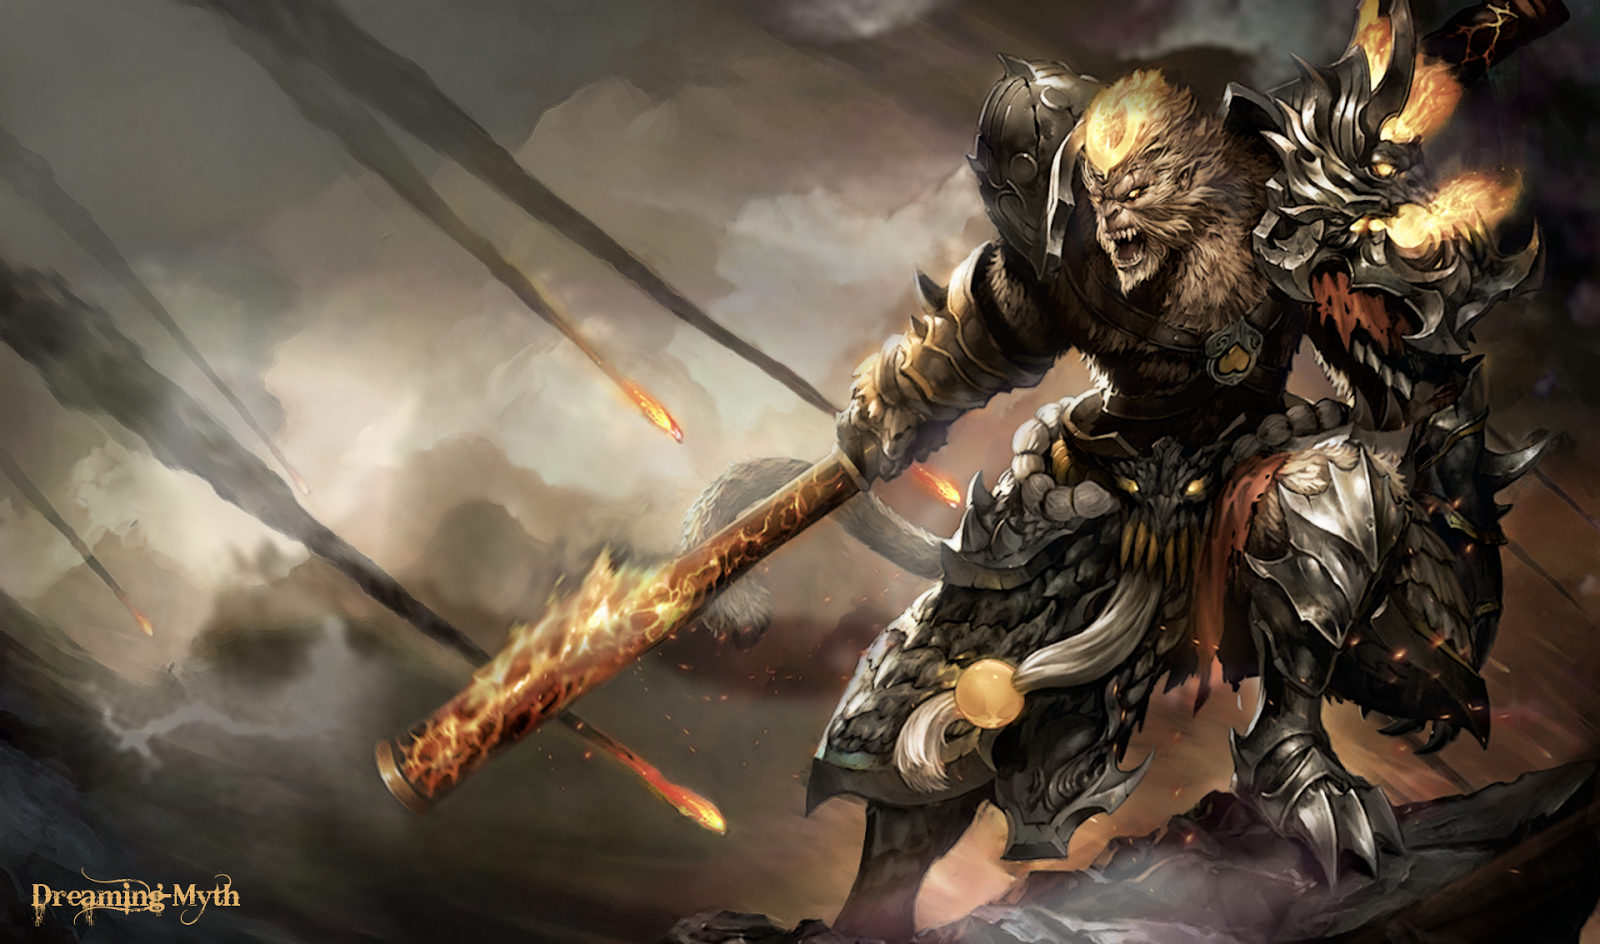 Wukong Desktop Backgrounds Wukong LOL Champion Wallpapers 1600x944